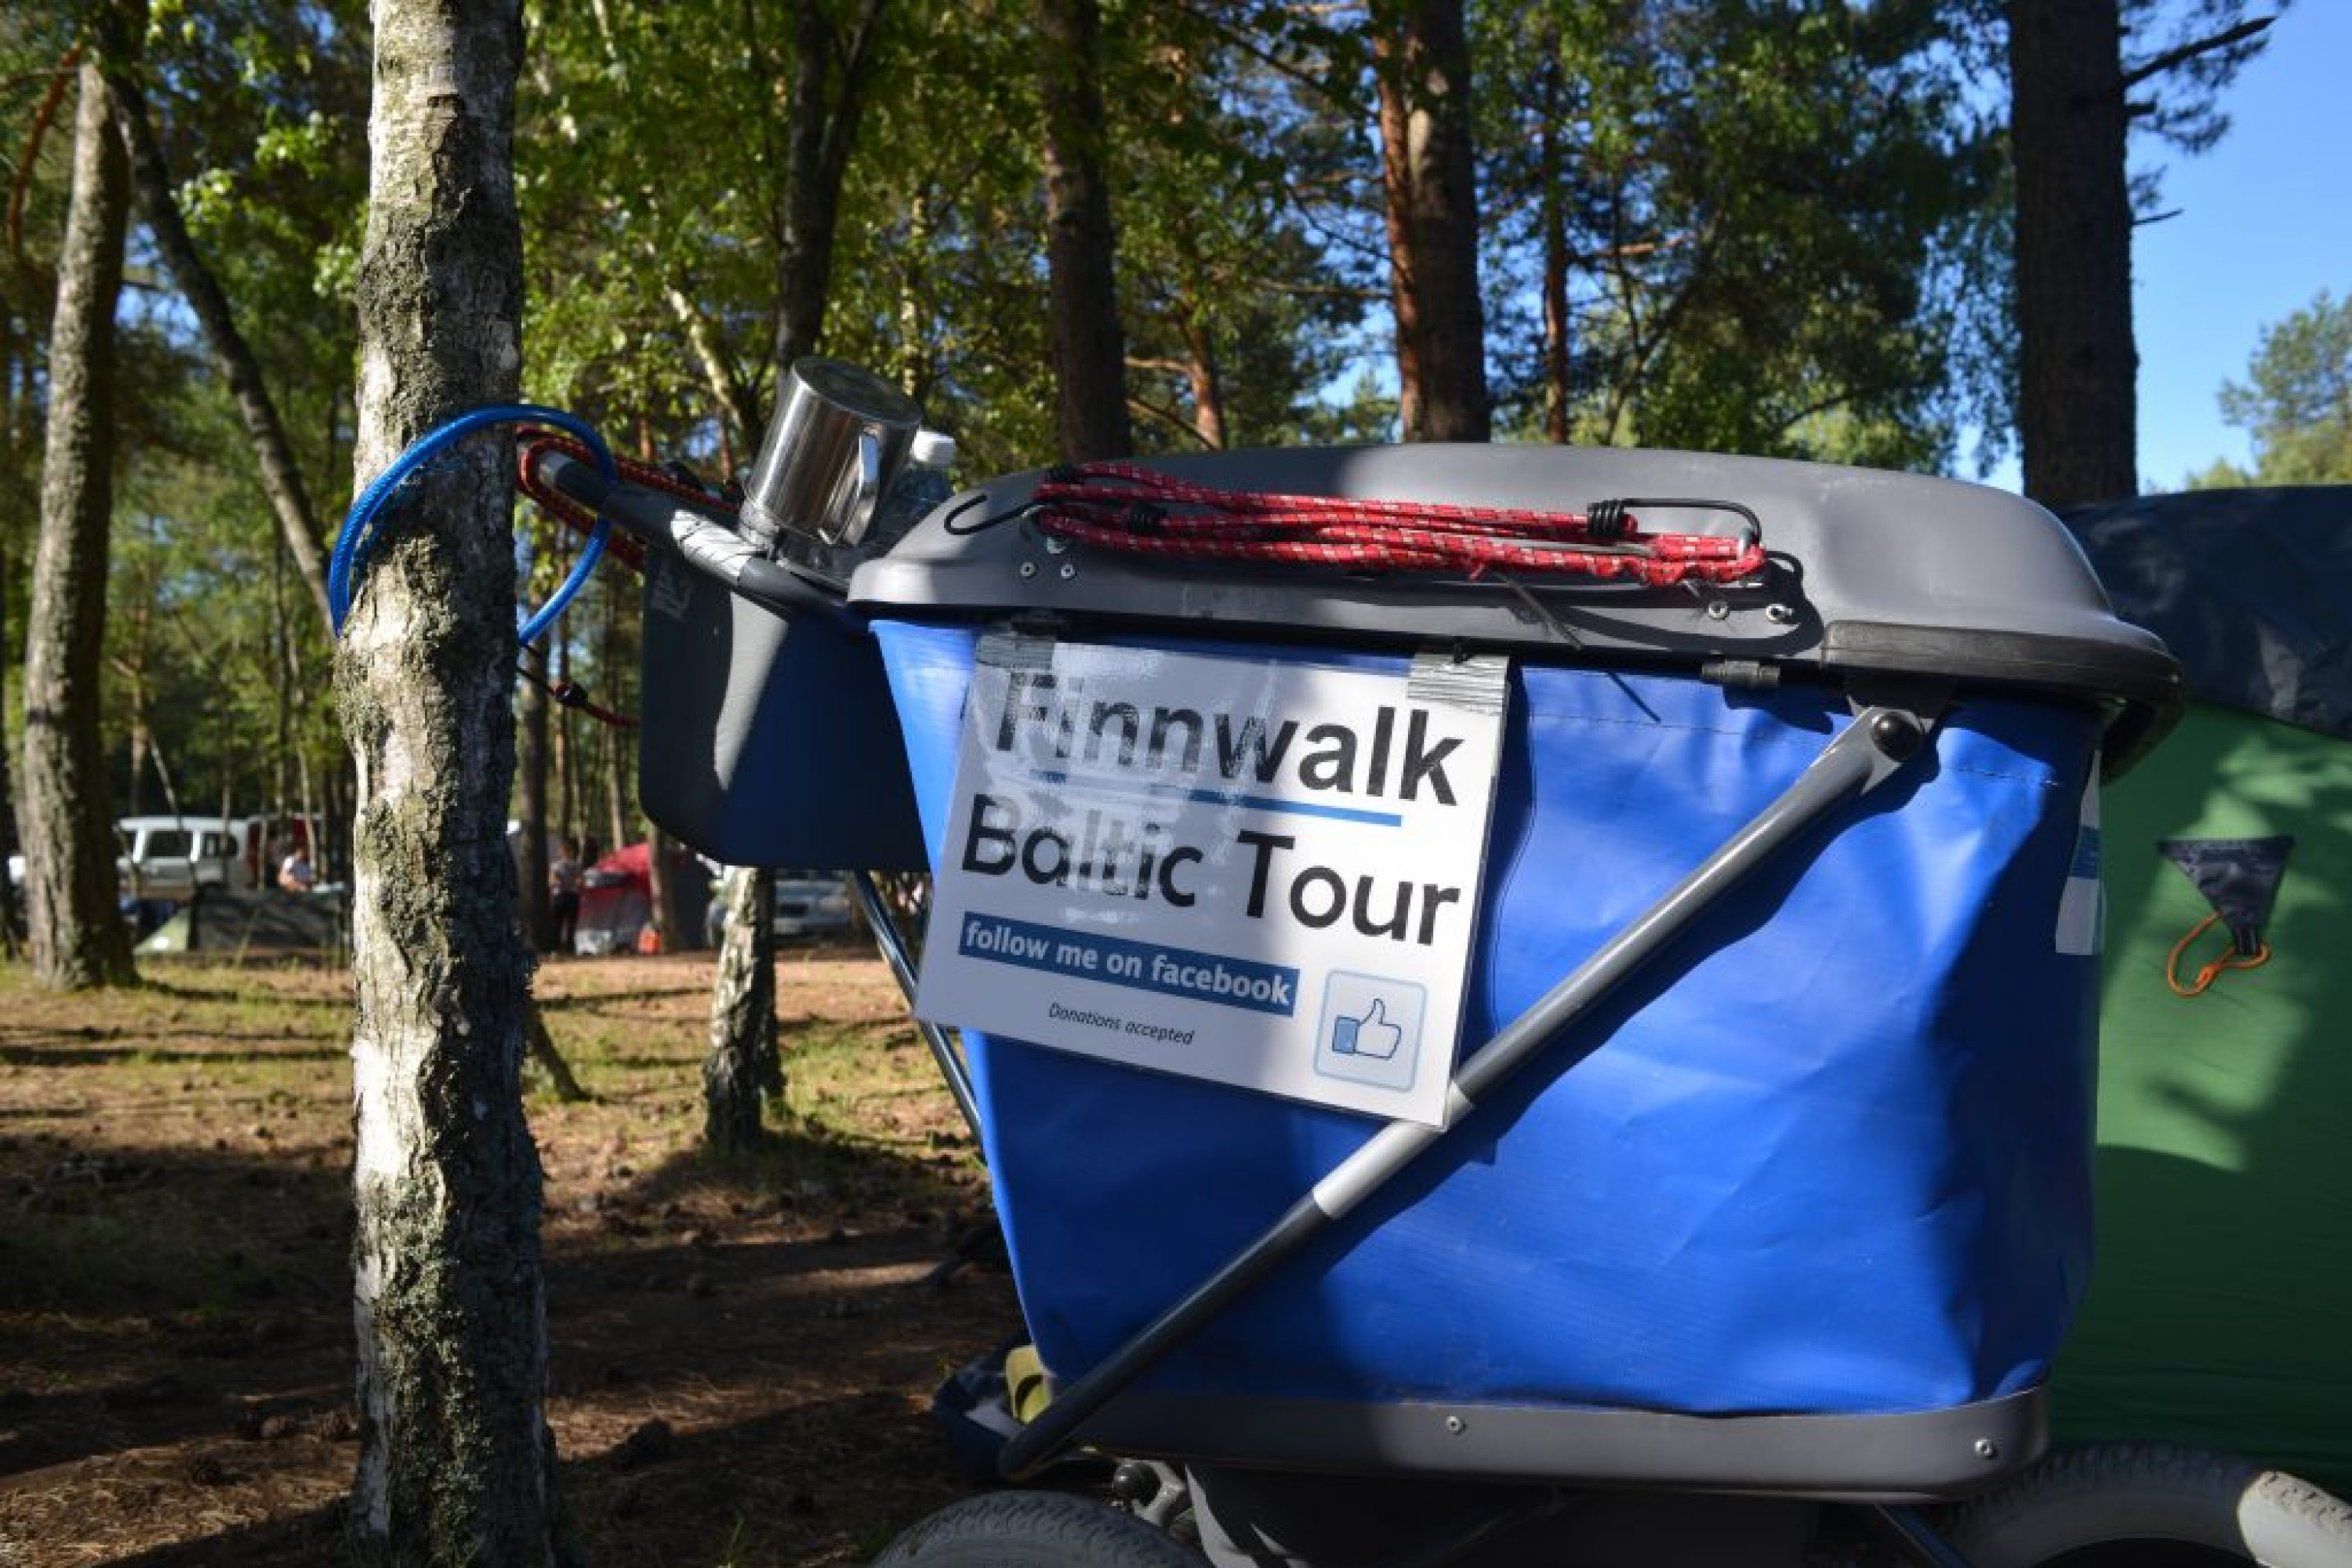 Finnwalk, baltic tour